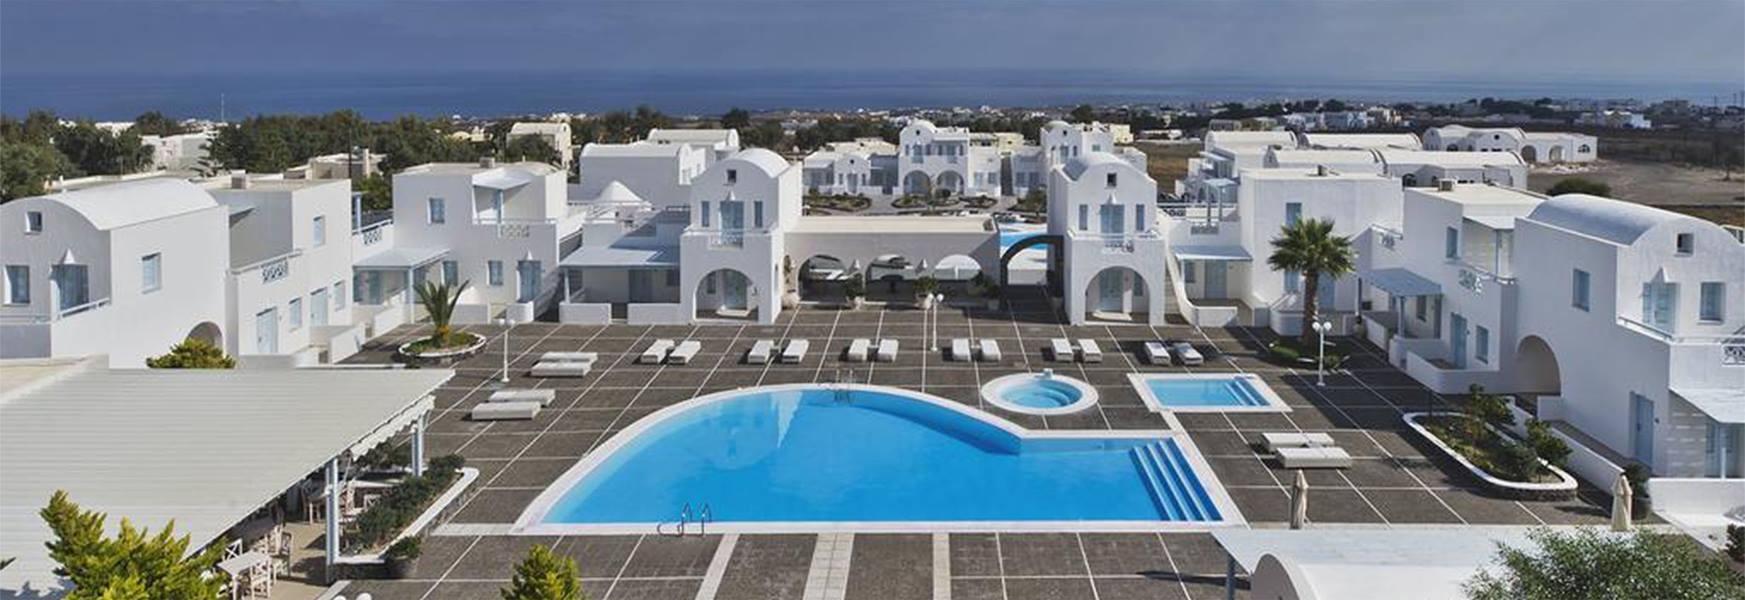 Hotel El Greco Resort & SPA